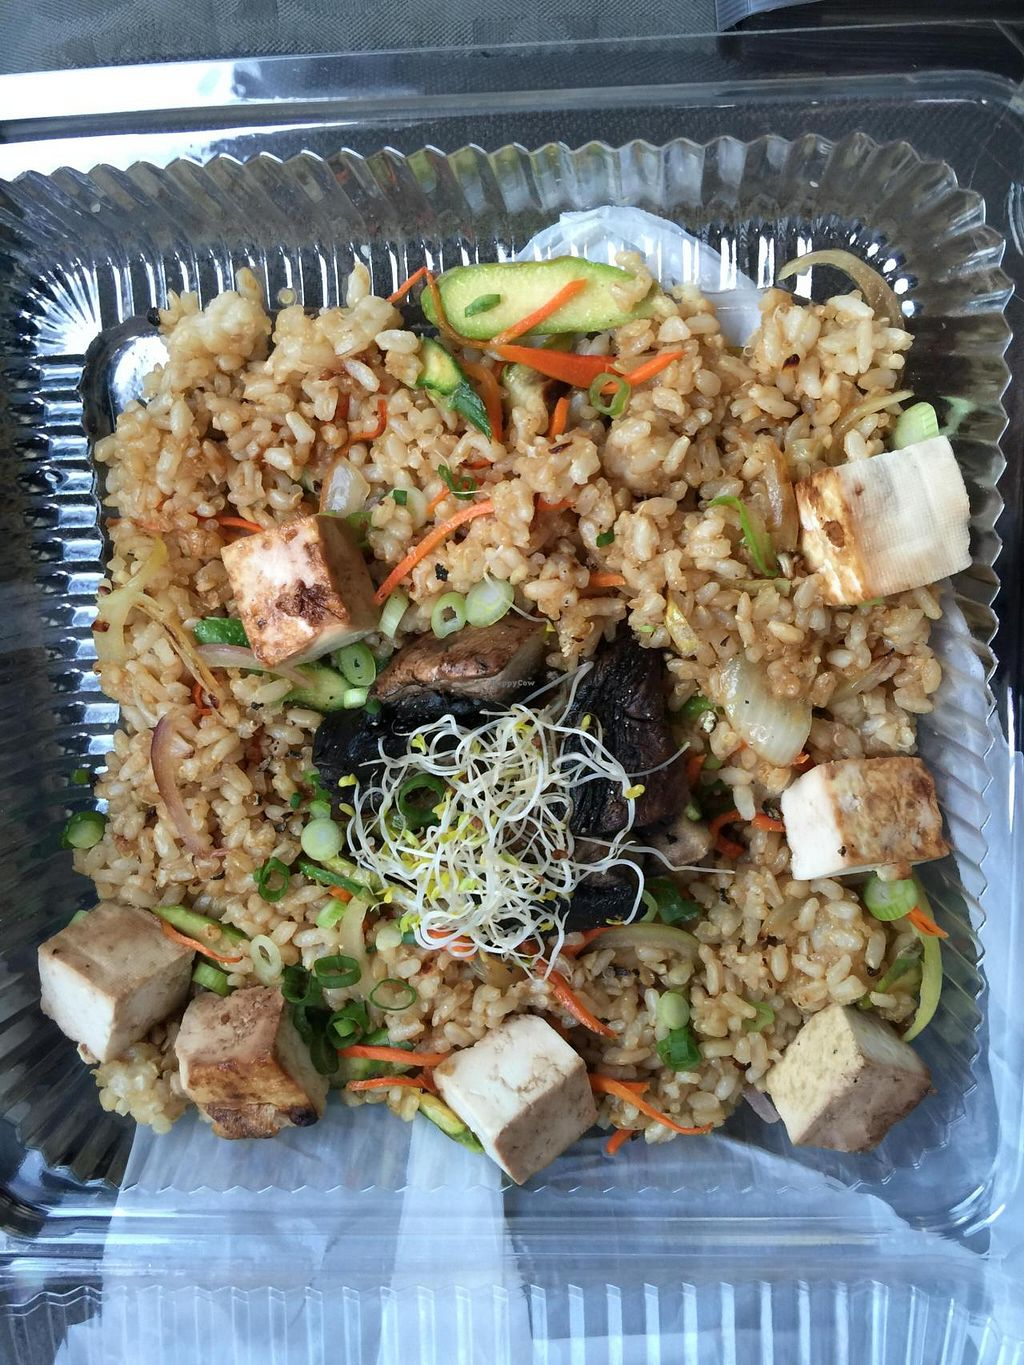 """Photo of CLOSED: The Urban Fork  by <a href=""""/members/profile/JoannaBanana47"""">JoannaBanana47</a> <br/>Tofu & quinoa <br/> July 19, 2015  - <a href='/contact/abuse/image/60712/109952'>Report</a>"""